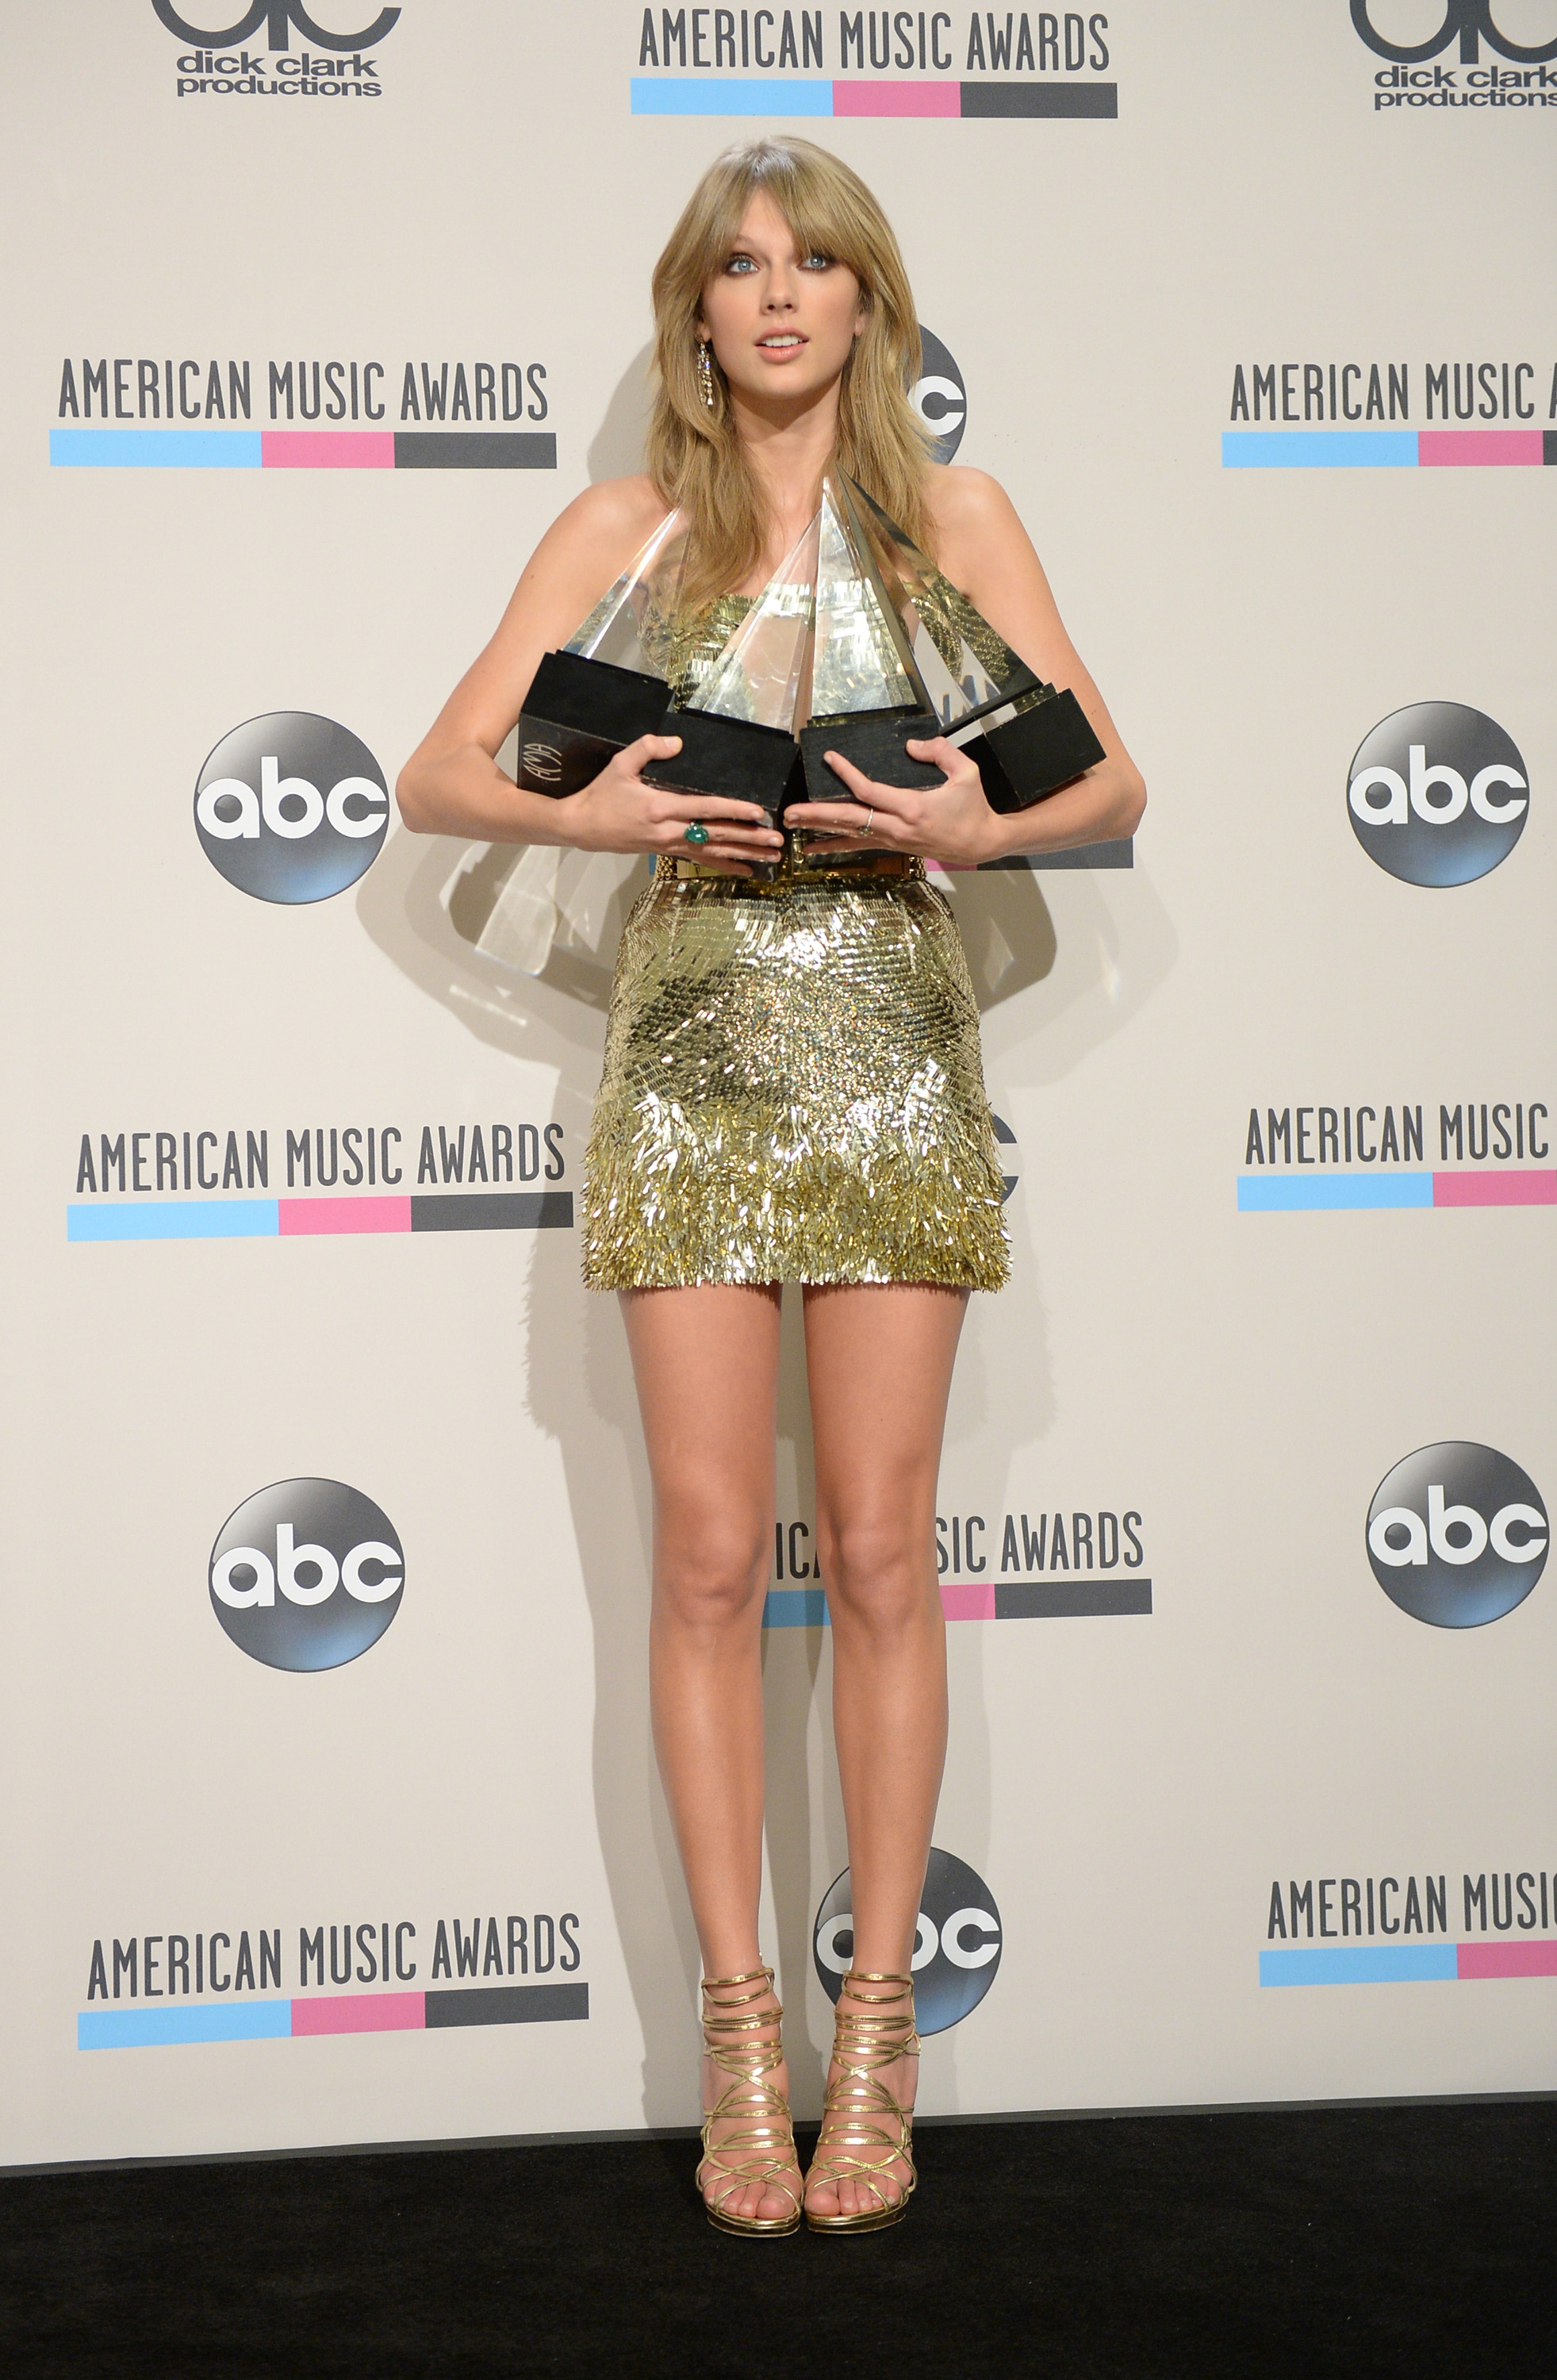 http://taylorpictures.net/albums/app/2013/americanmusicawards/105.jpg